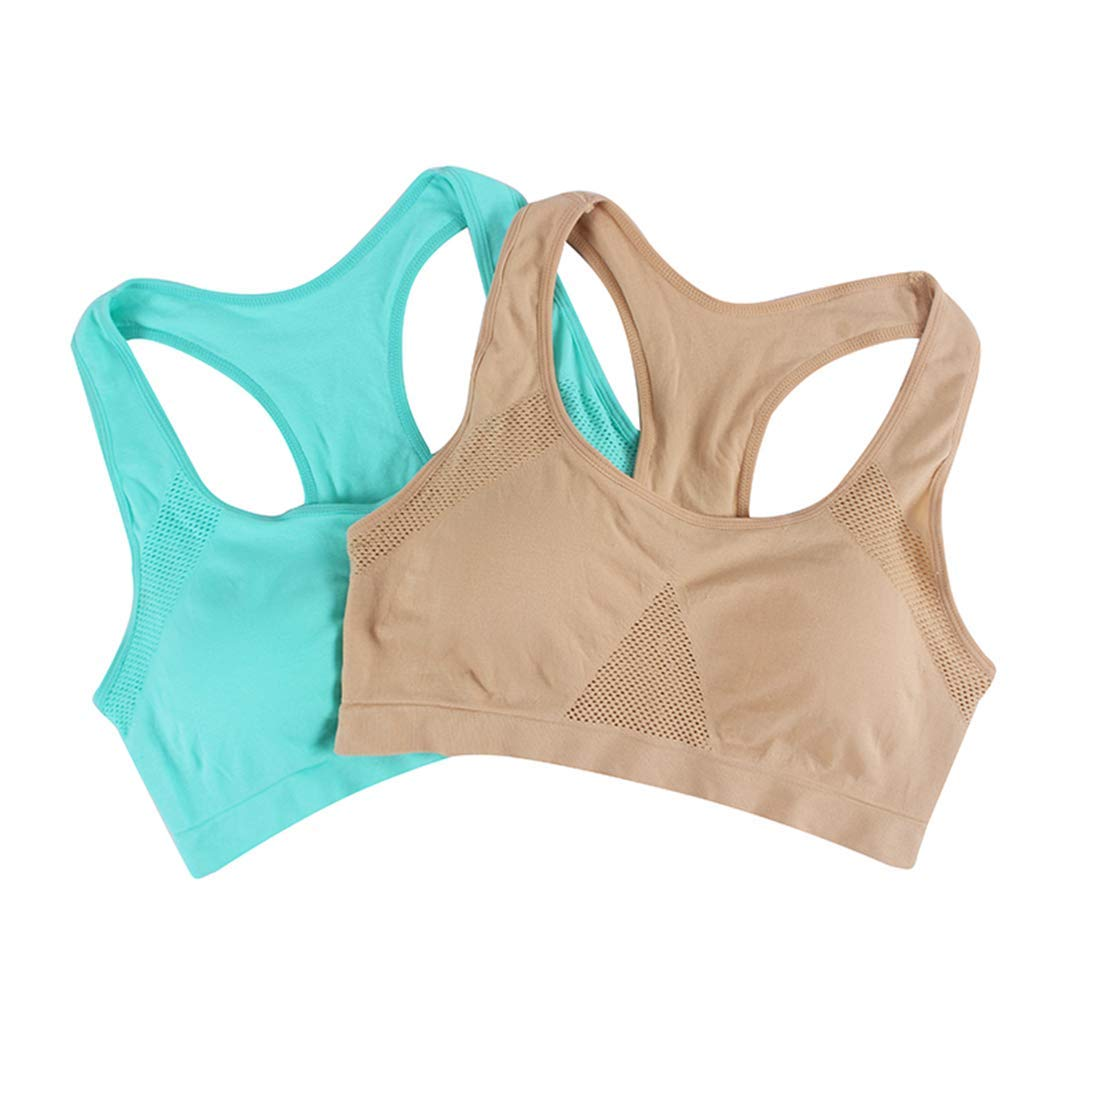 43373f37d Get Quotations · CTRICKER 2Pcs Women Shockproof Plus Size Yoga Sport Bra  Breathable Fitness Underwear